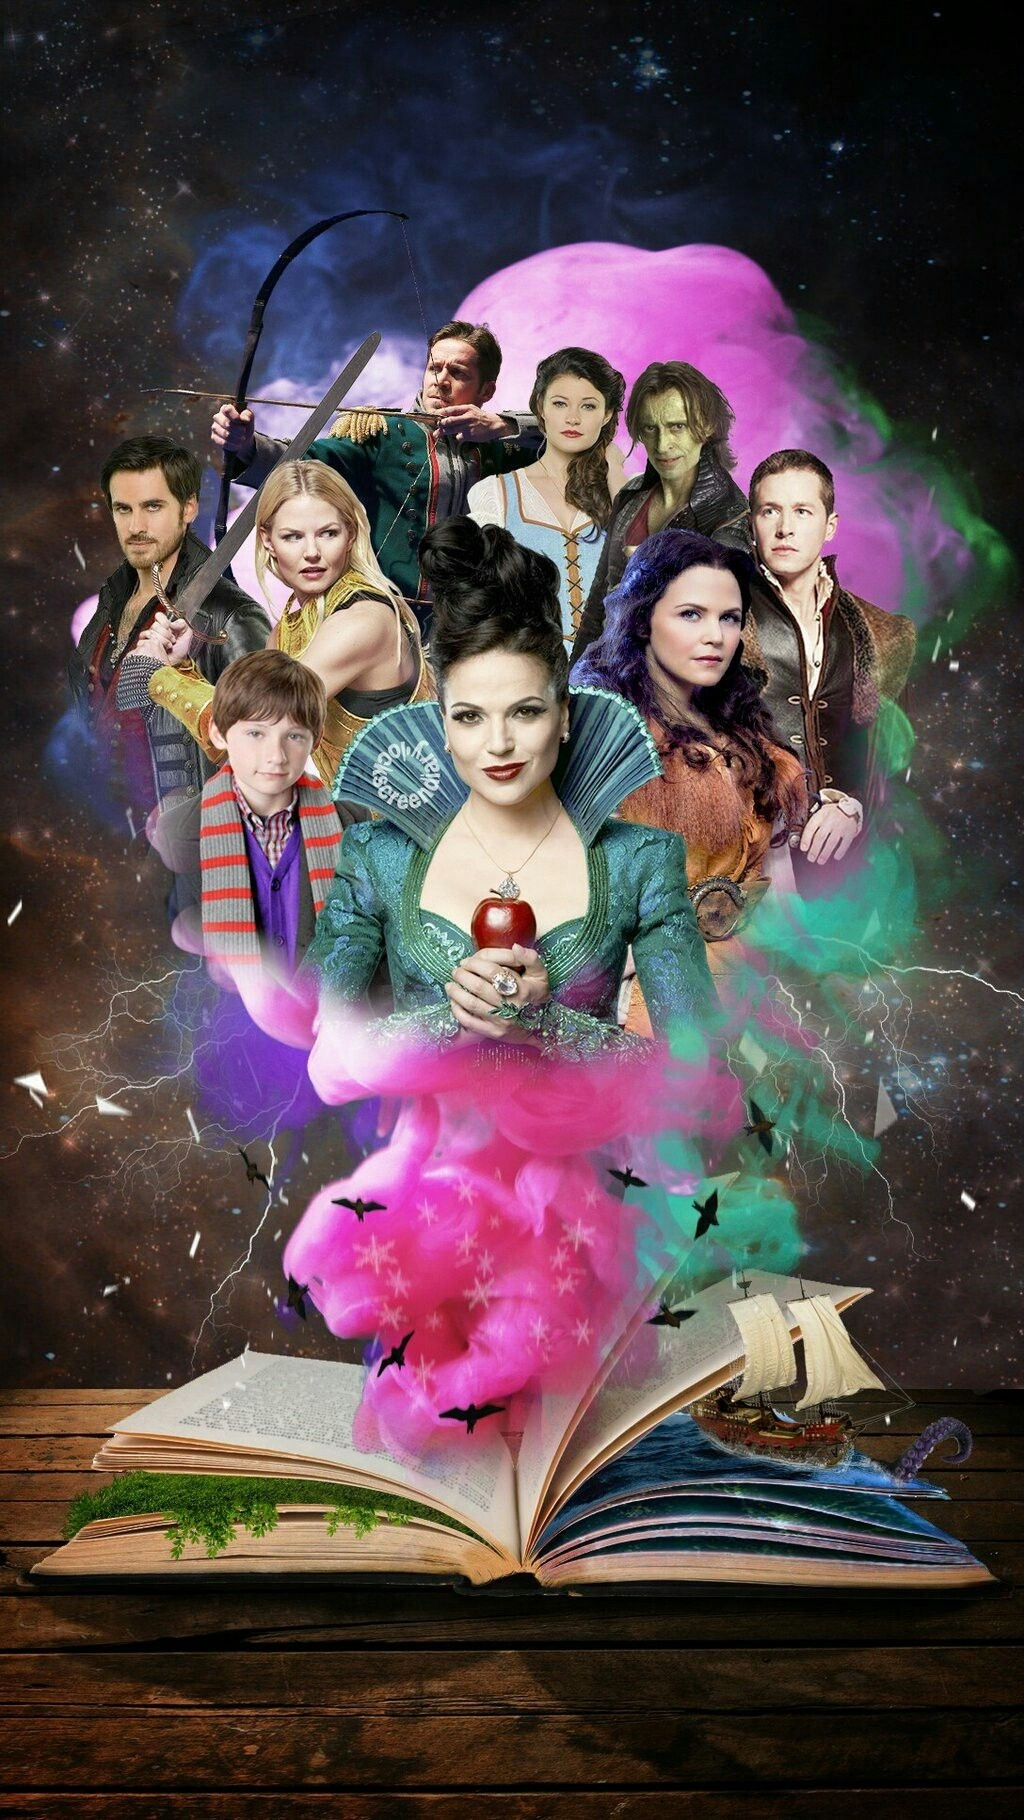 once upon a time | ouat | pinterest | ouat, wallpaper and tvs